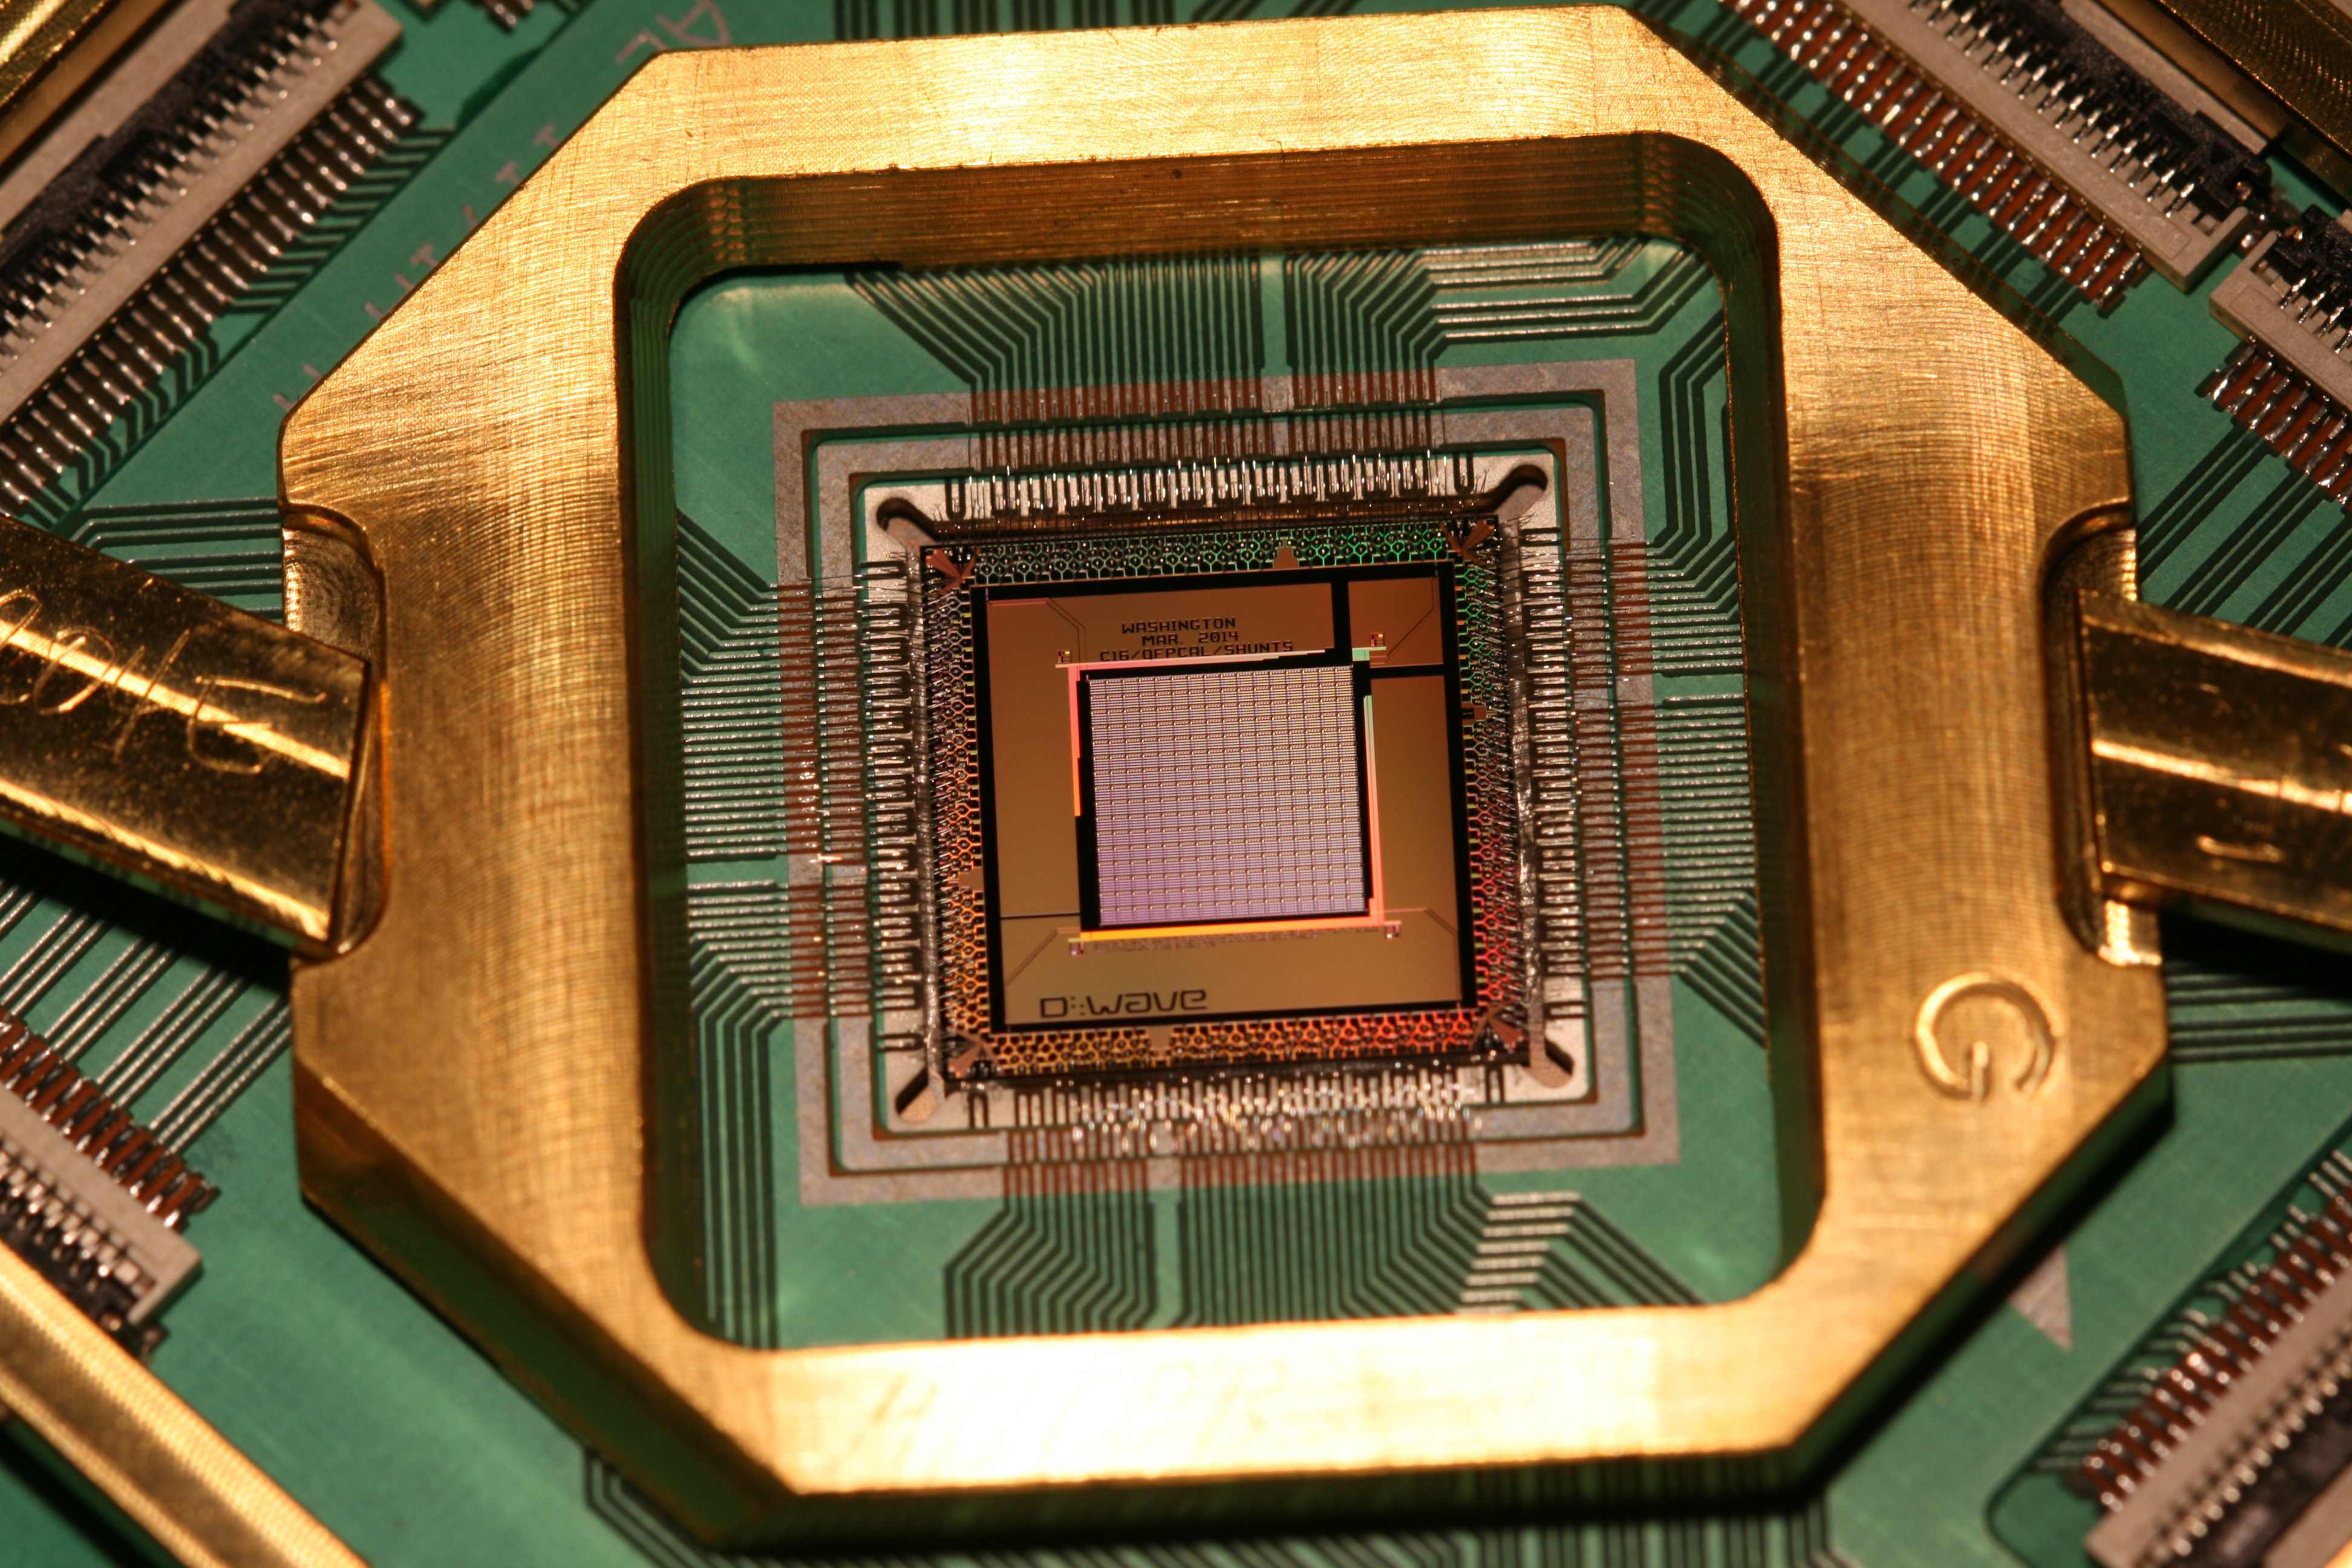 Startup D-Wave is trying to bring quantum computing out of the research lab. This is one of its chips.